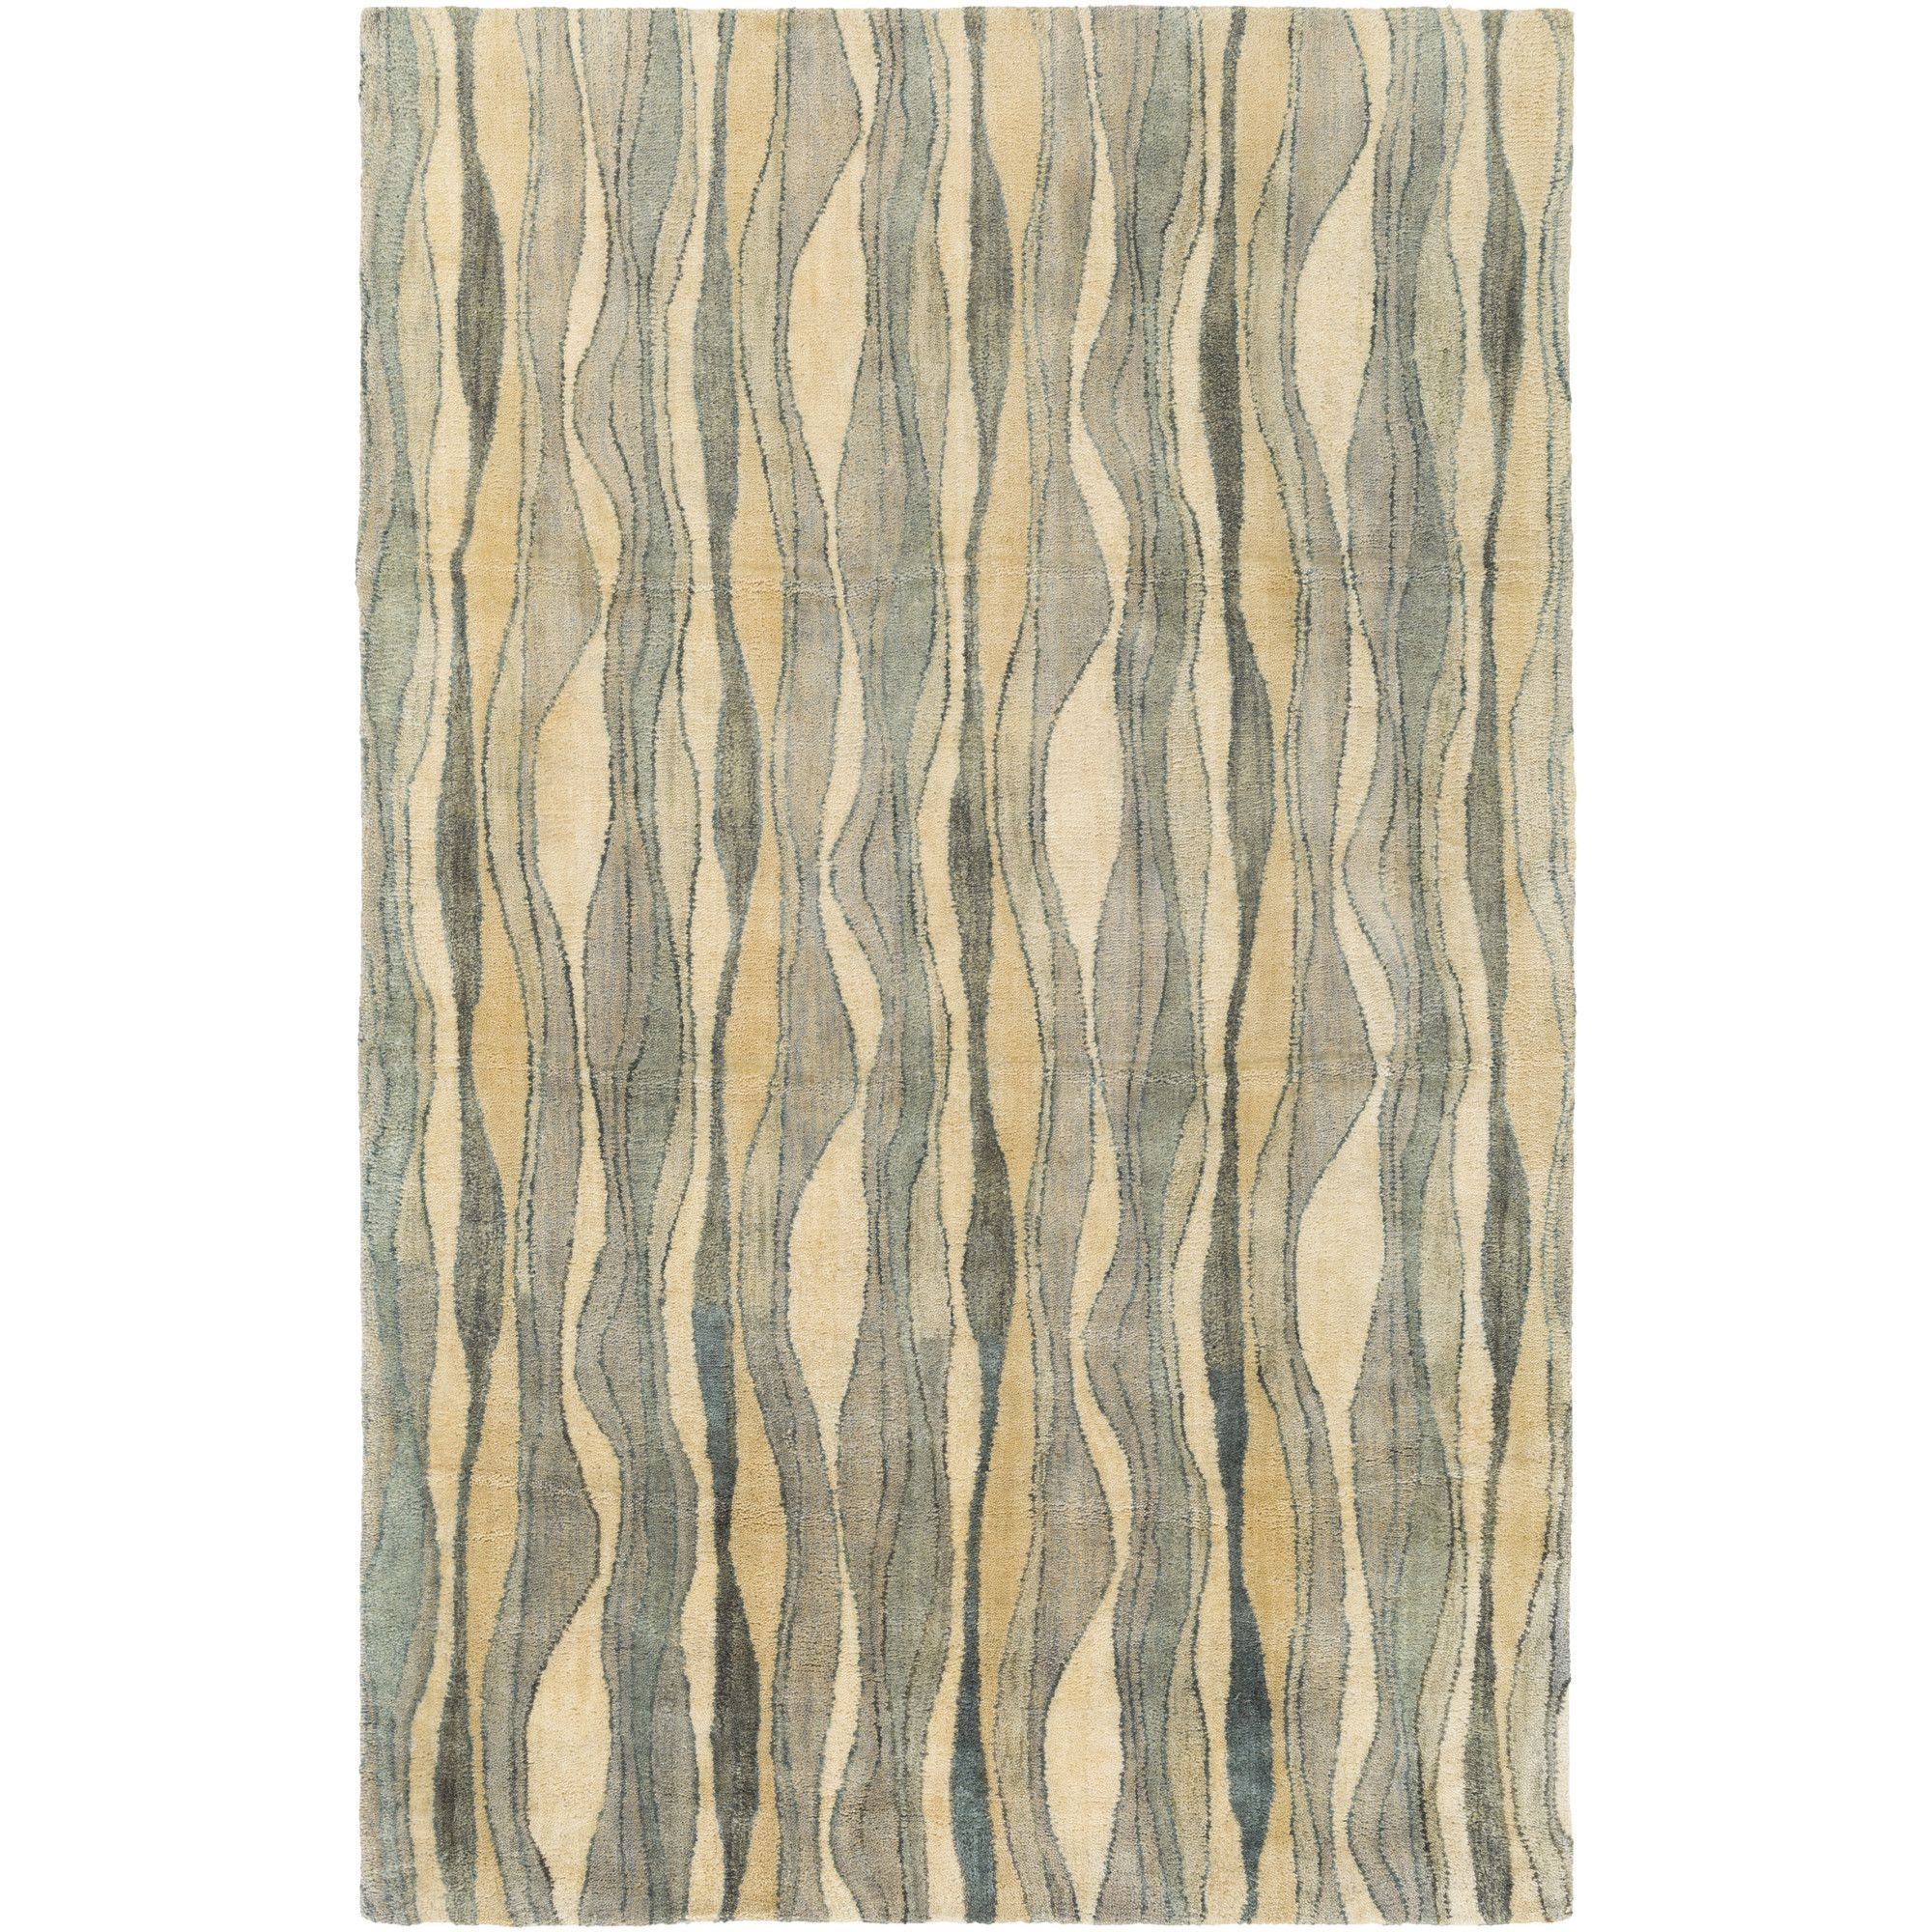 Natural Affinity Hand-Tufted Yellow/Beige Area Rug